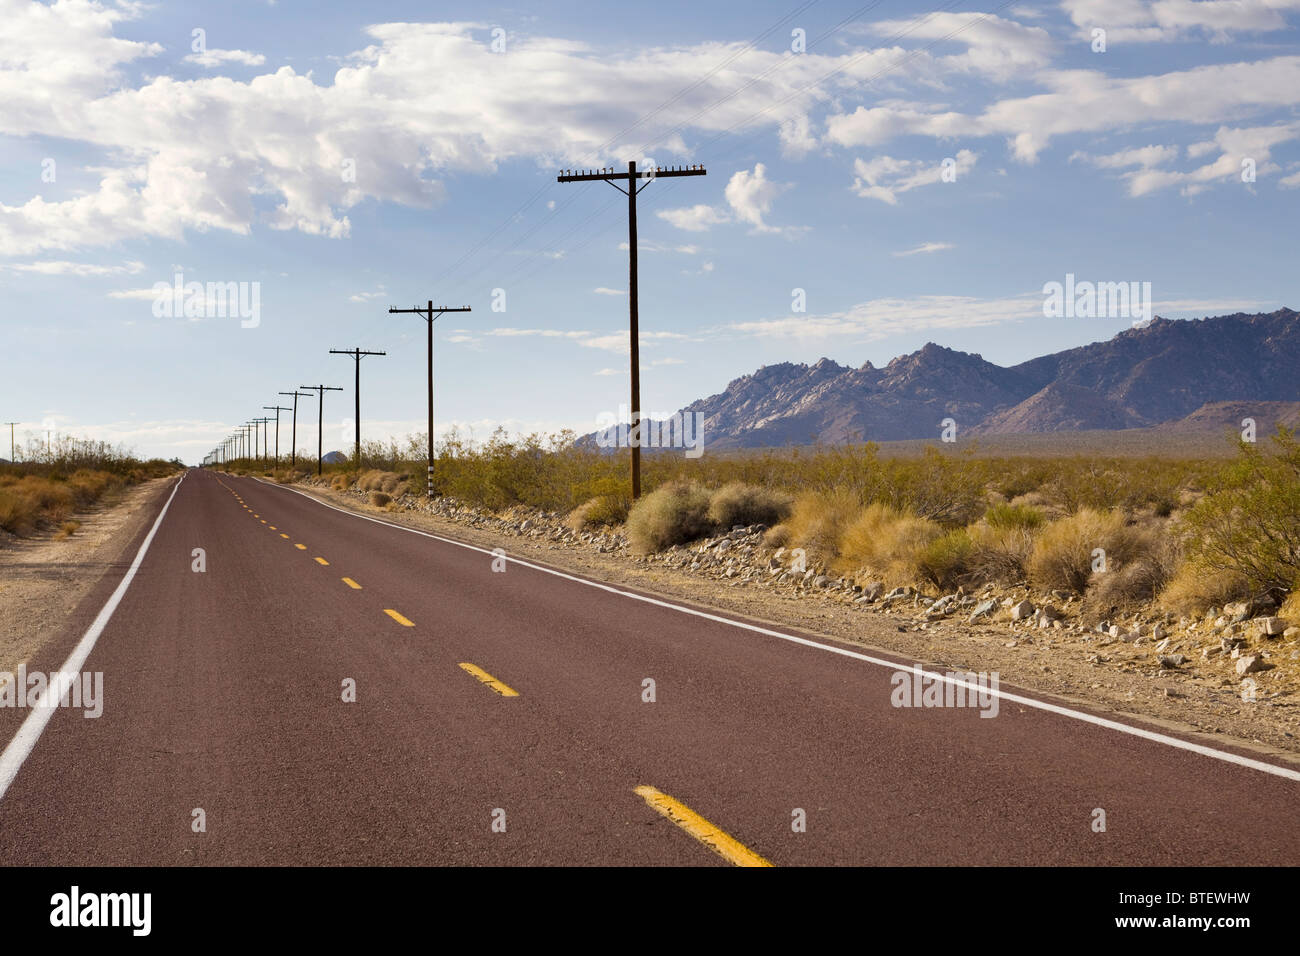 Far Far Away likewise 2 Dead Torrents Rain Slam Southern California additionally Hd City Road Background 6414 as well Stock Photo Electricity Lines Desert Image758060 besides 478830. on desert power lines